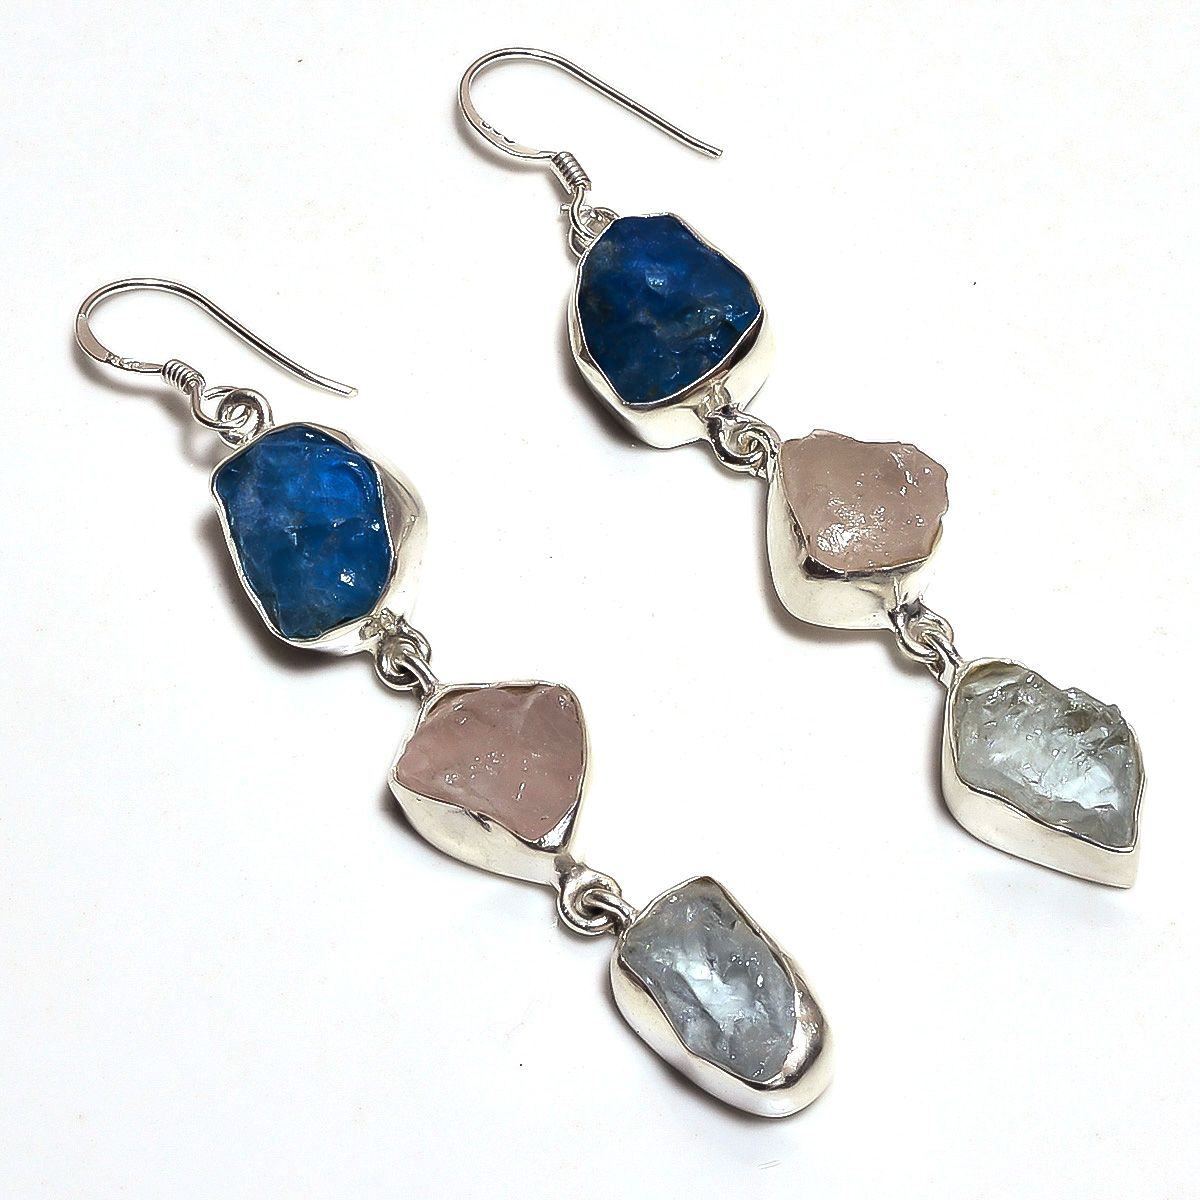 Neon Apatite Rose Quartz Raw Gemstone 925 Sterling Silver Earrings